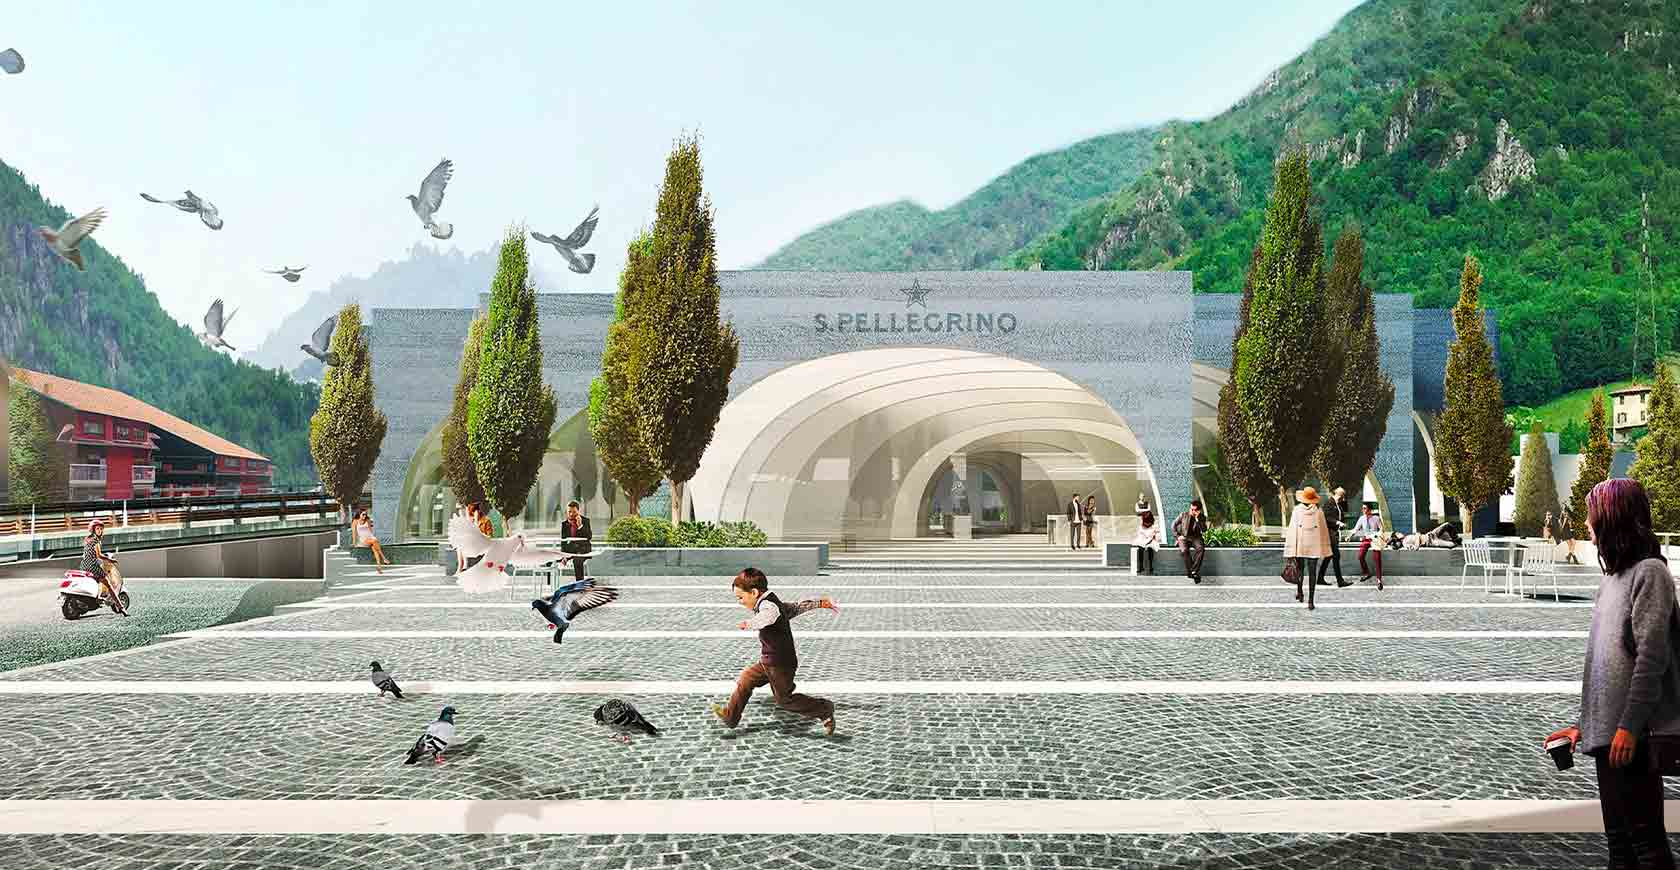 Find out how San Pellegrino will renovate the existing plant and make it even greener